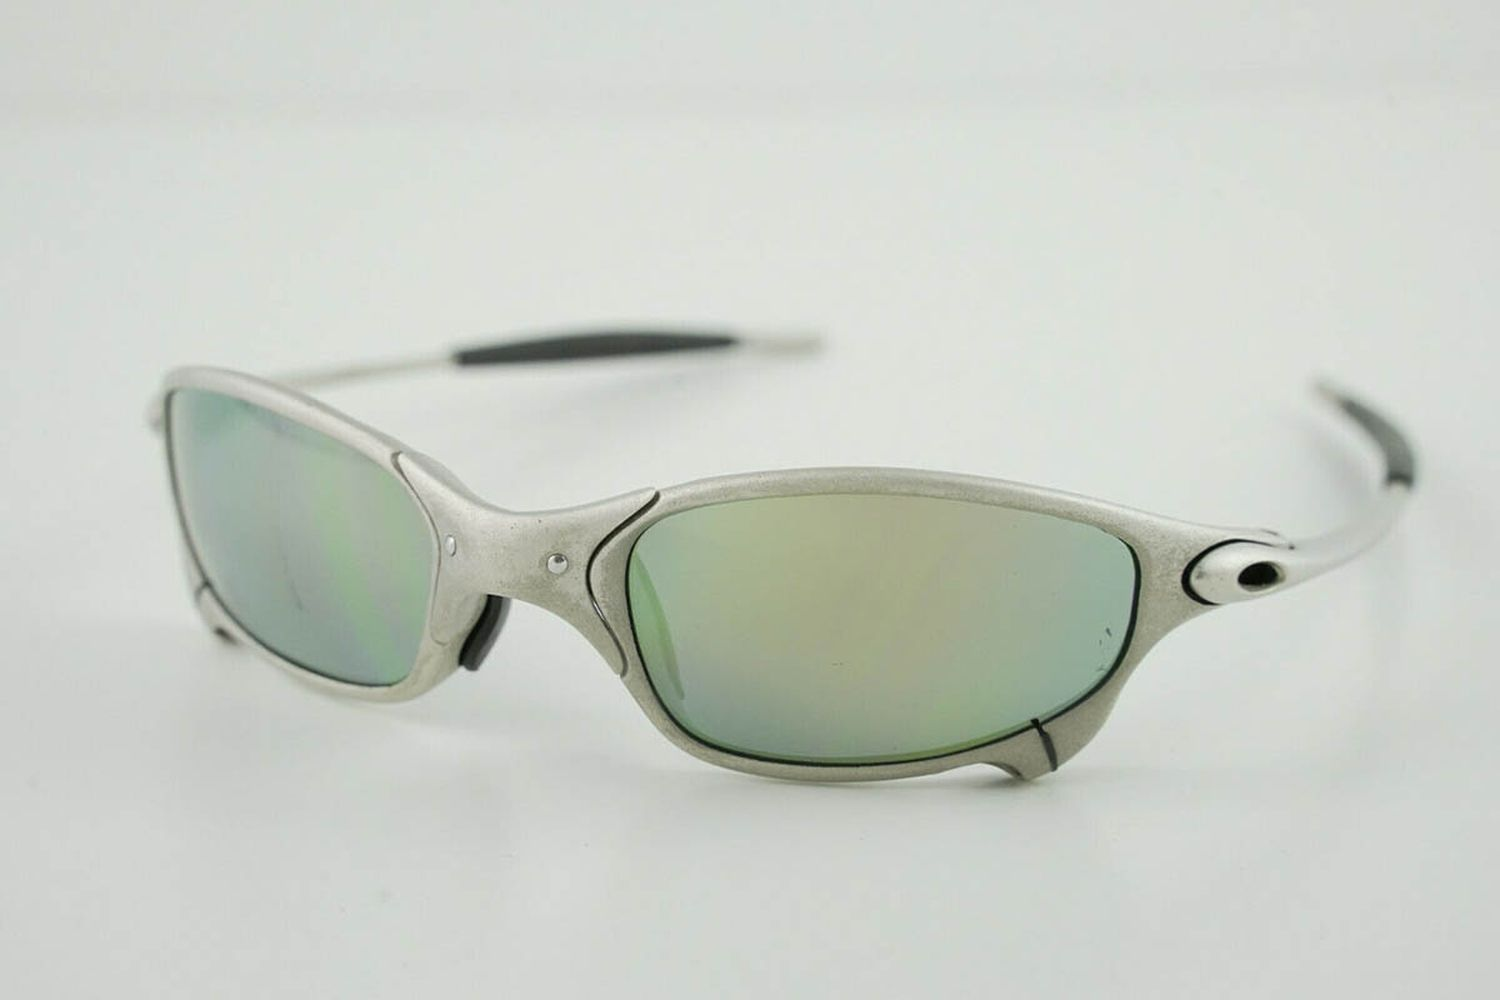 X-Metal Juliet Sunglasses 1st Gen